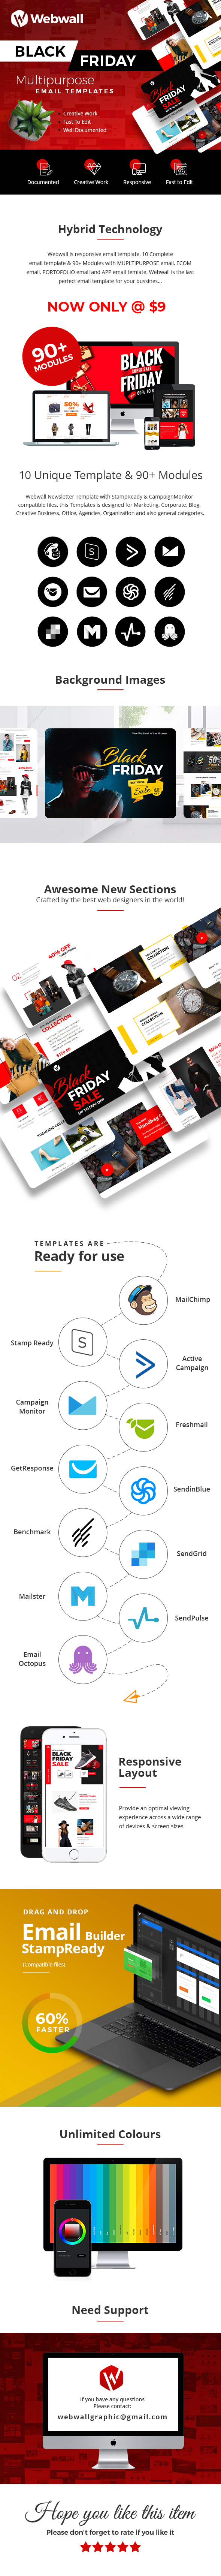 Webwall - Black Friday Template + StampReady & CampaignMonitor compatible files - 1